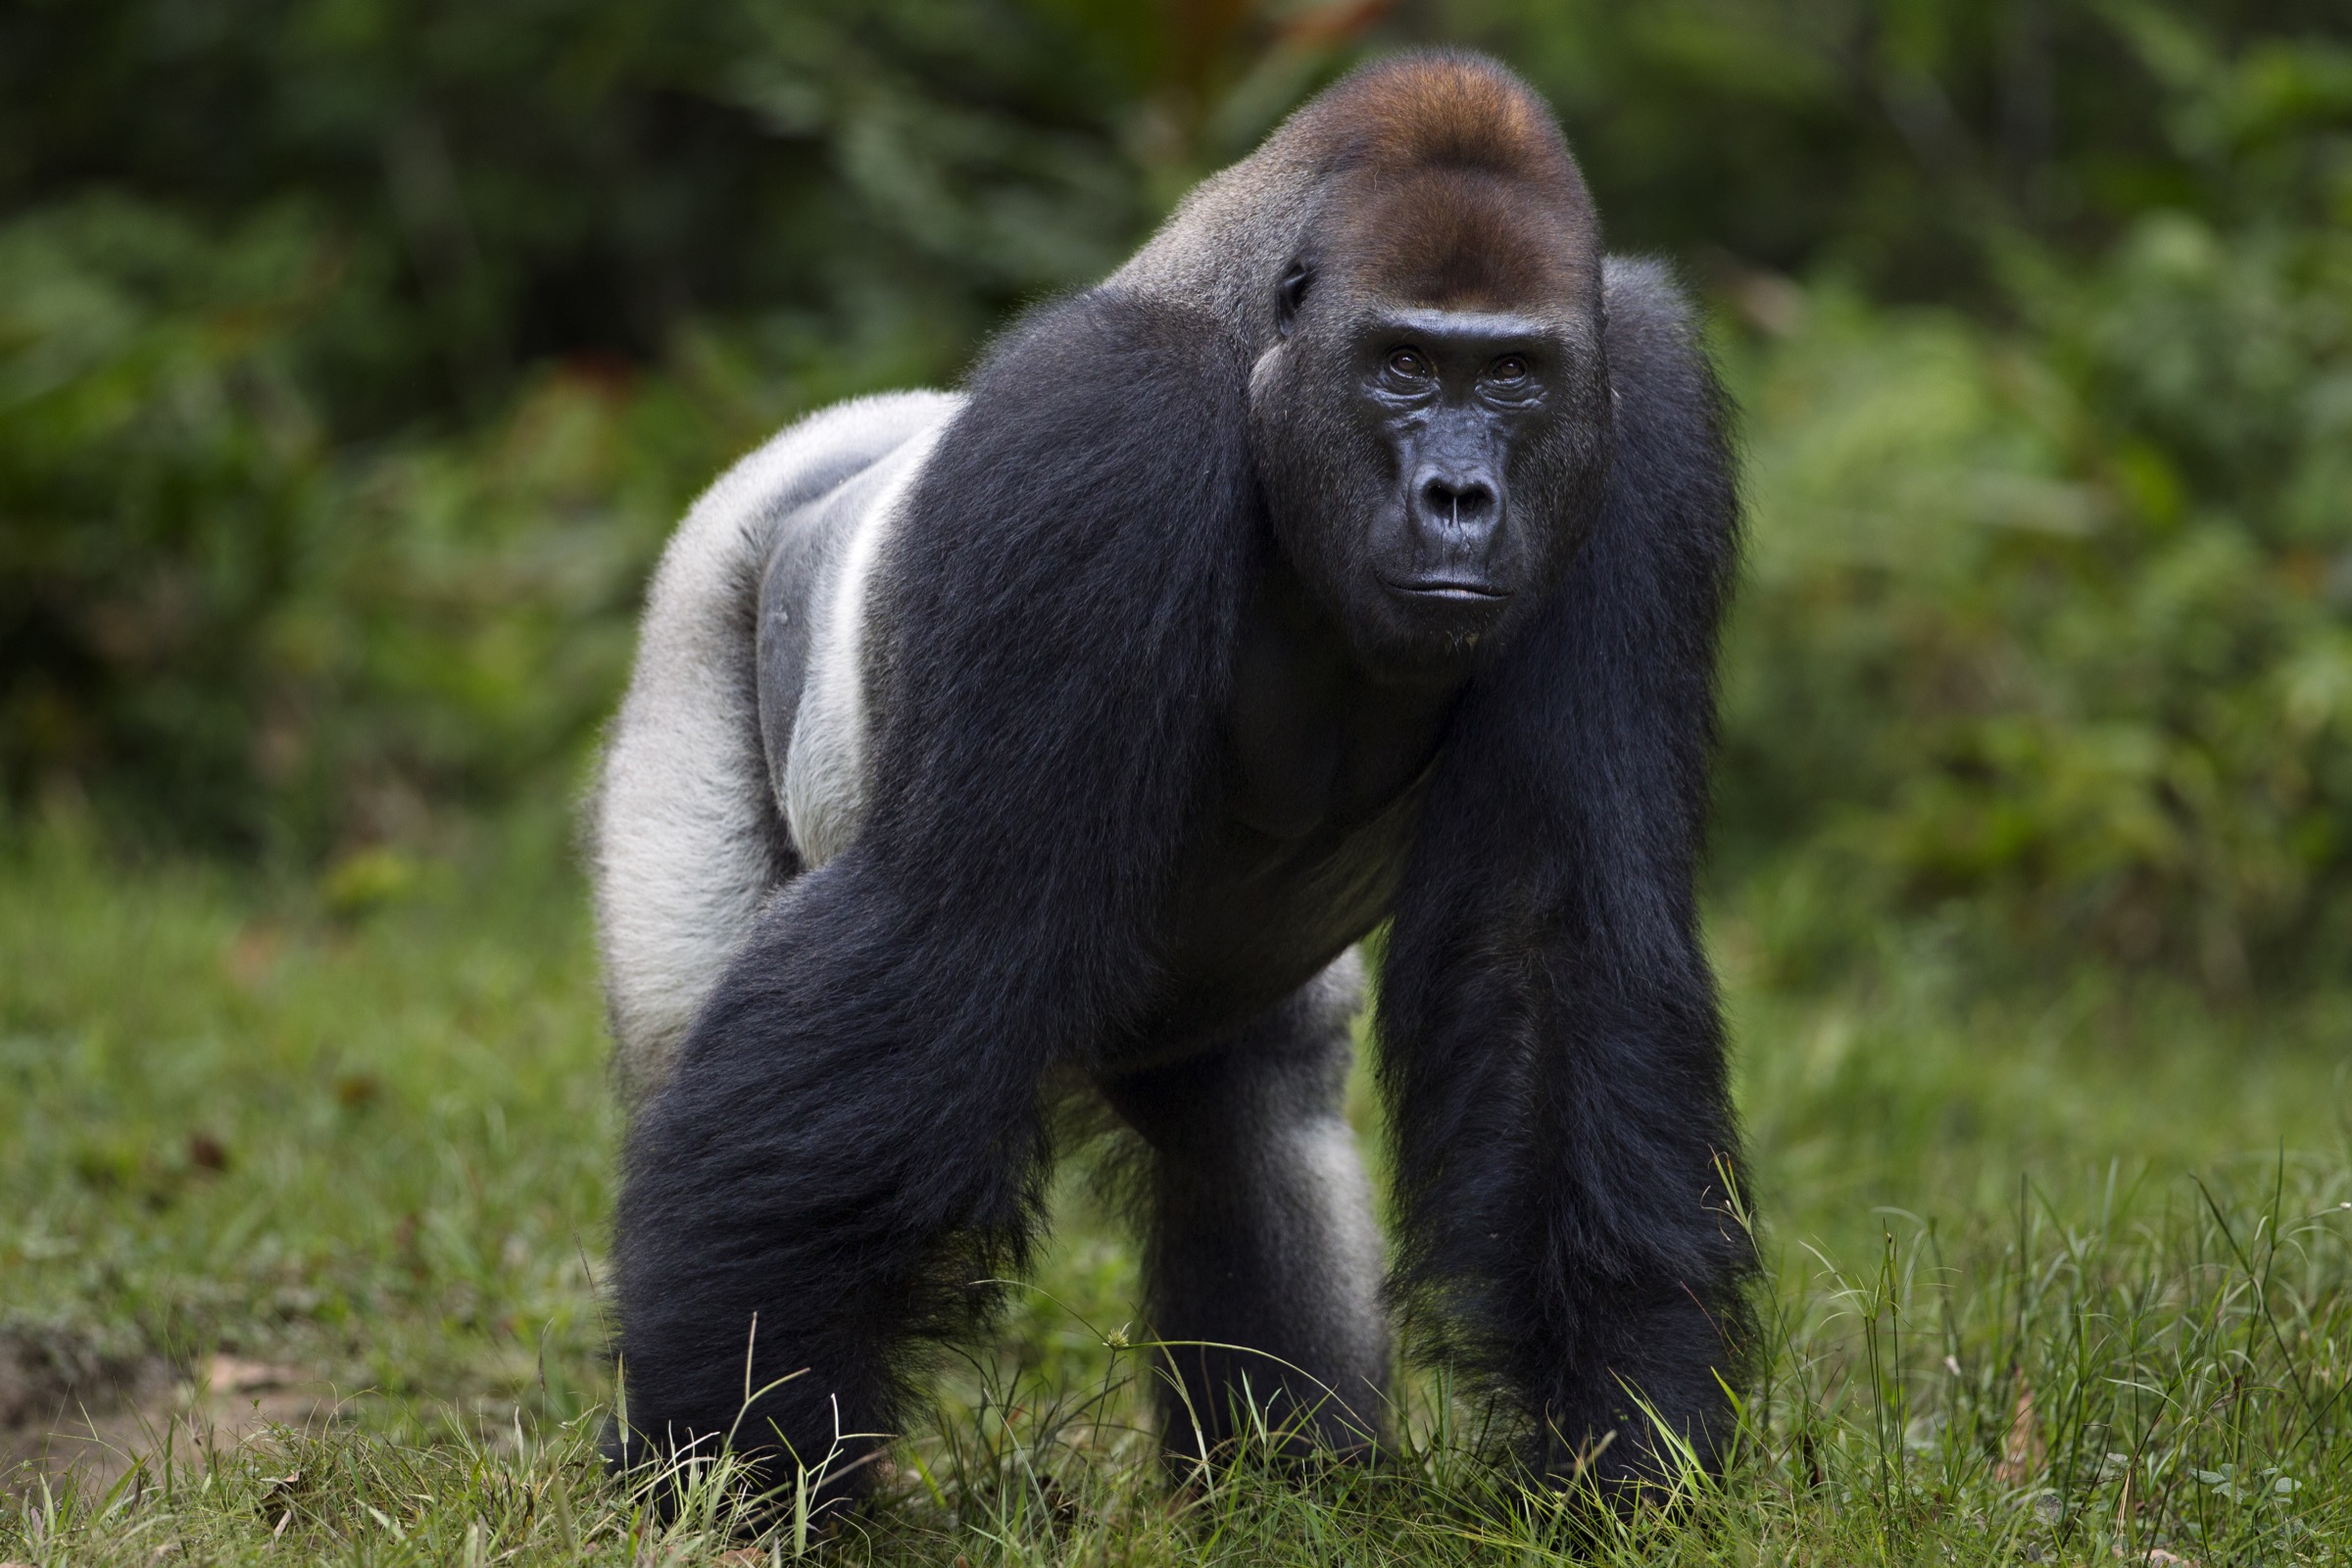 The characteristic silver hair on his back is visible in this shot of Makumba, the dominant male in his family group of western lowland gorillas.